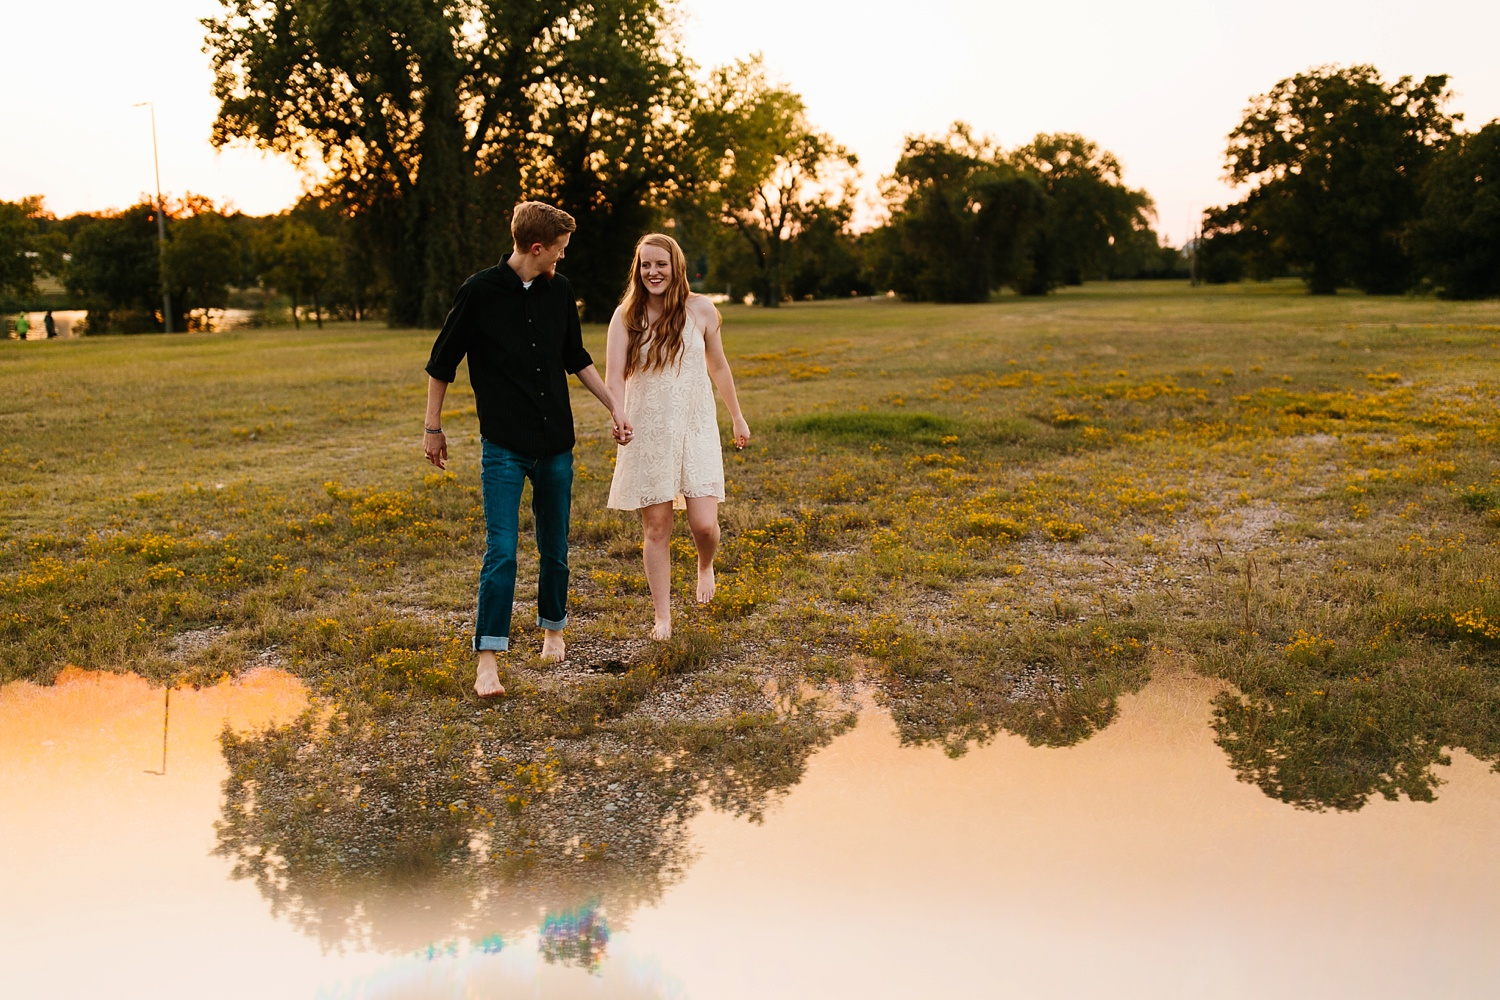 Kayla + Alex _ a joyful and loving engagement shoot in Waco, Texas by North Texas Wedding Photographer Rachel Meagan Photography _54